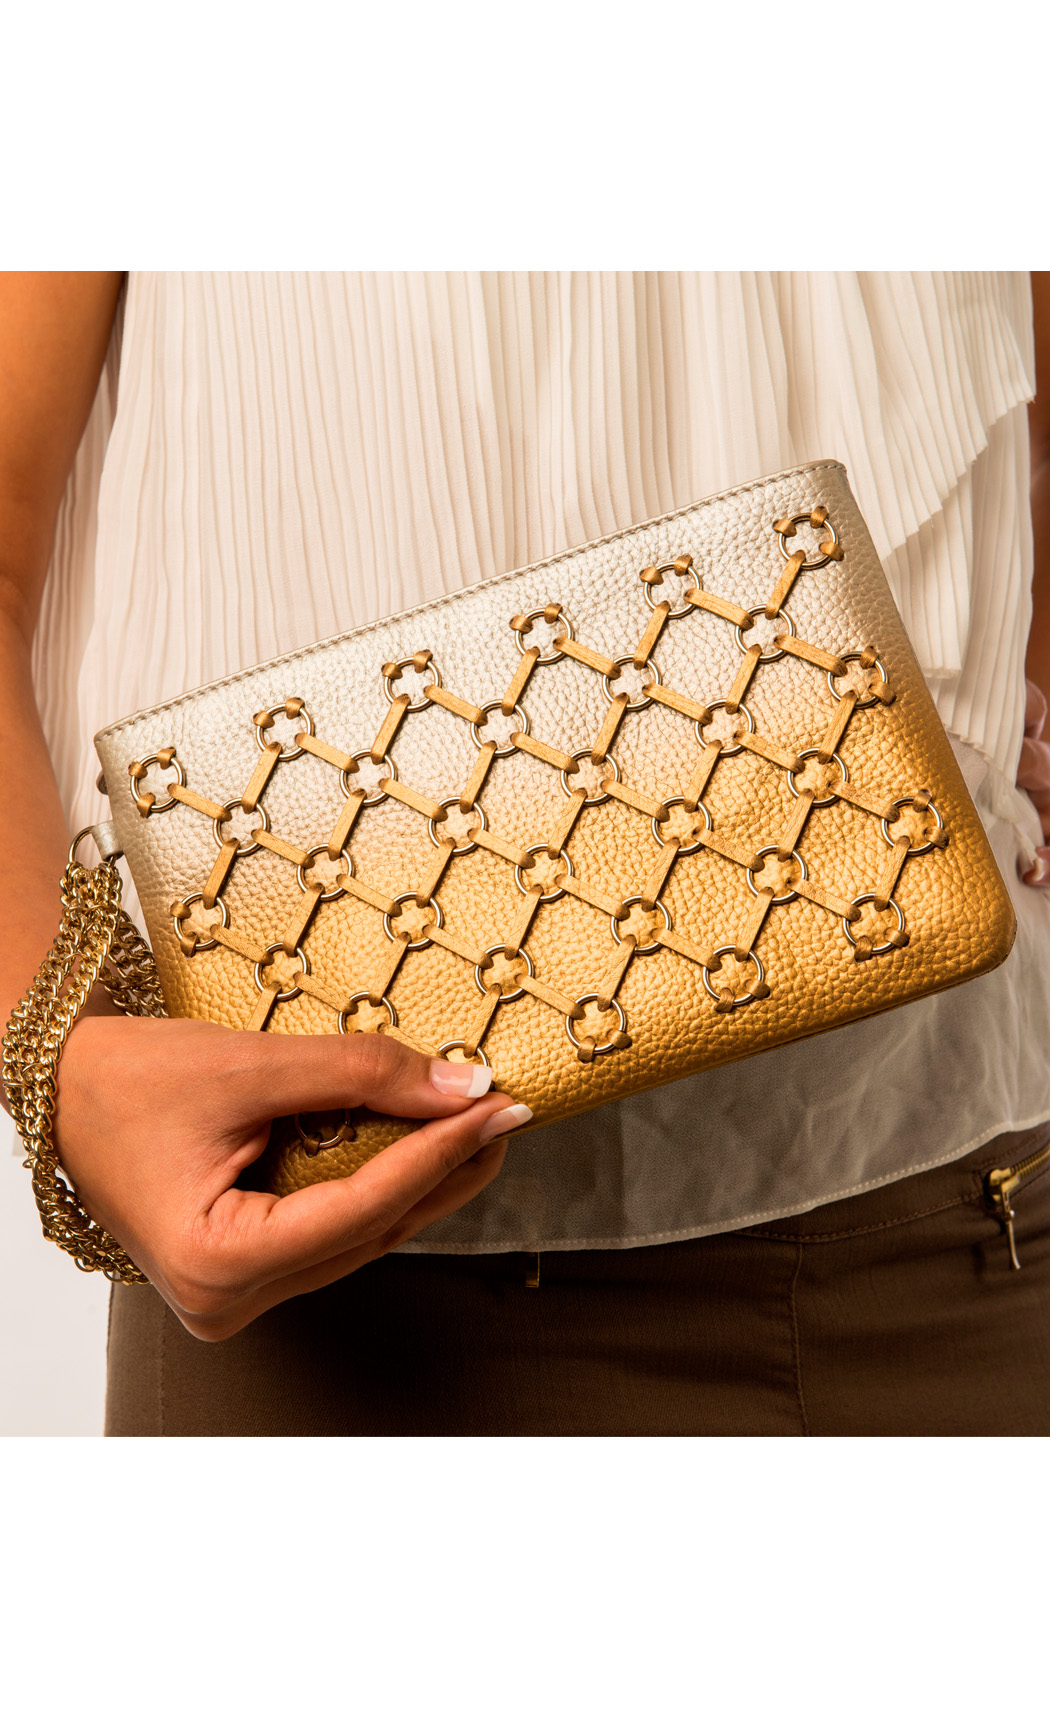 Symphony and Symmetry Ring Wristlet in Gold-Silver. Buy Online